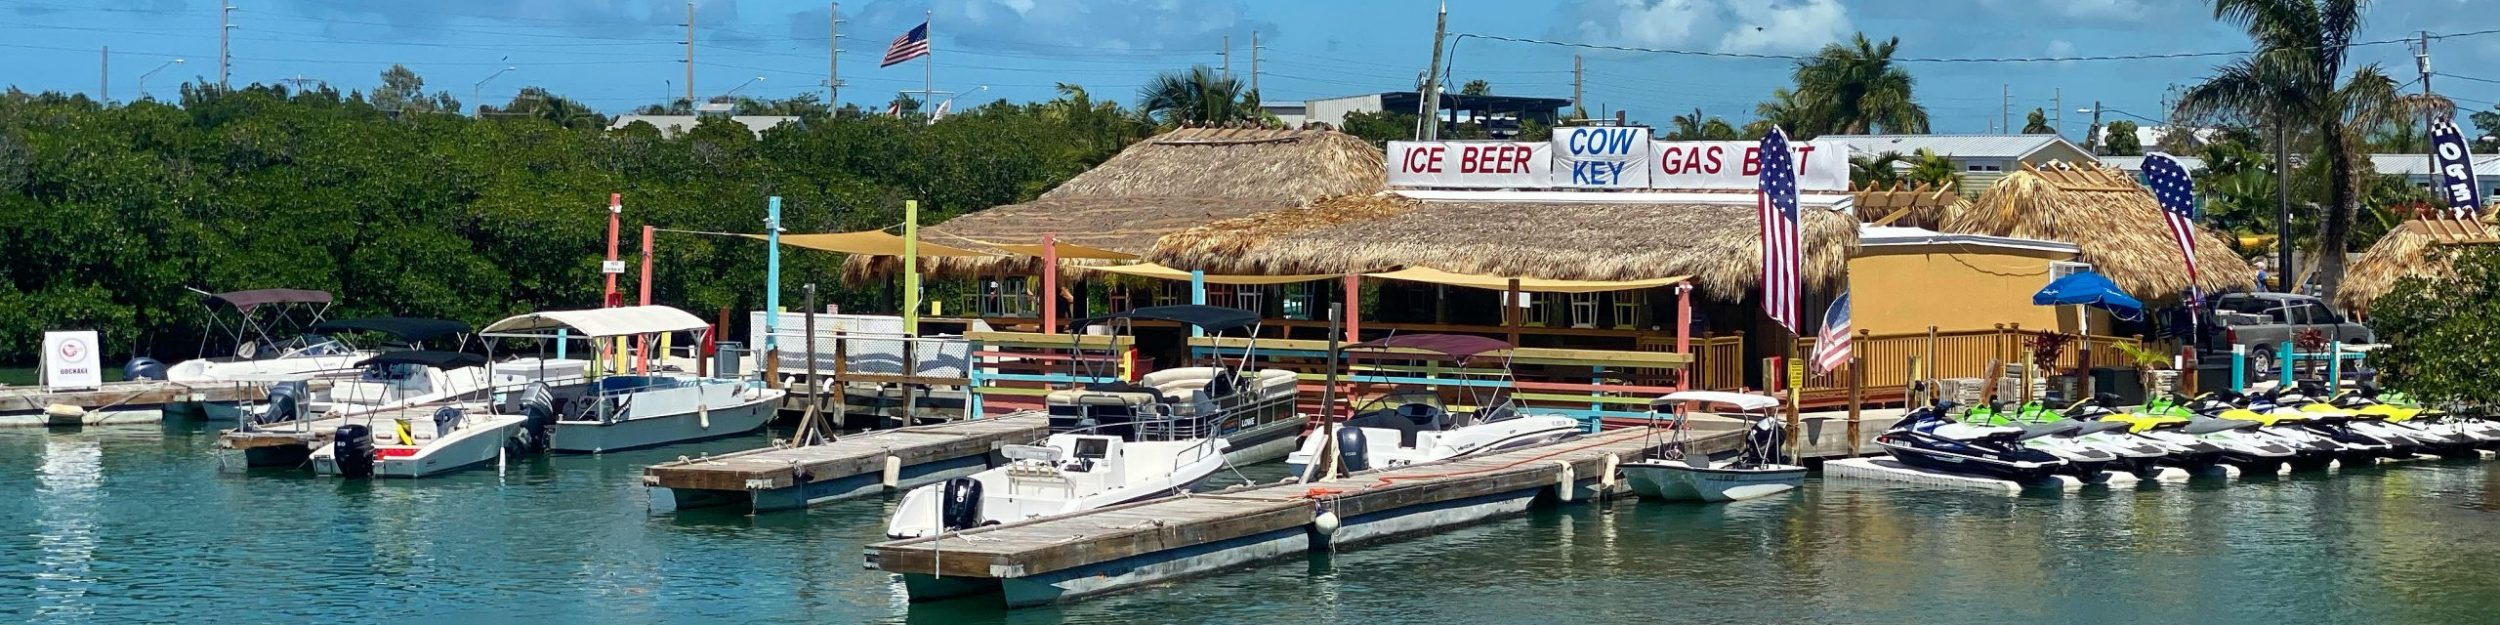 Cow Key Marina